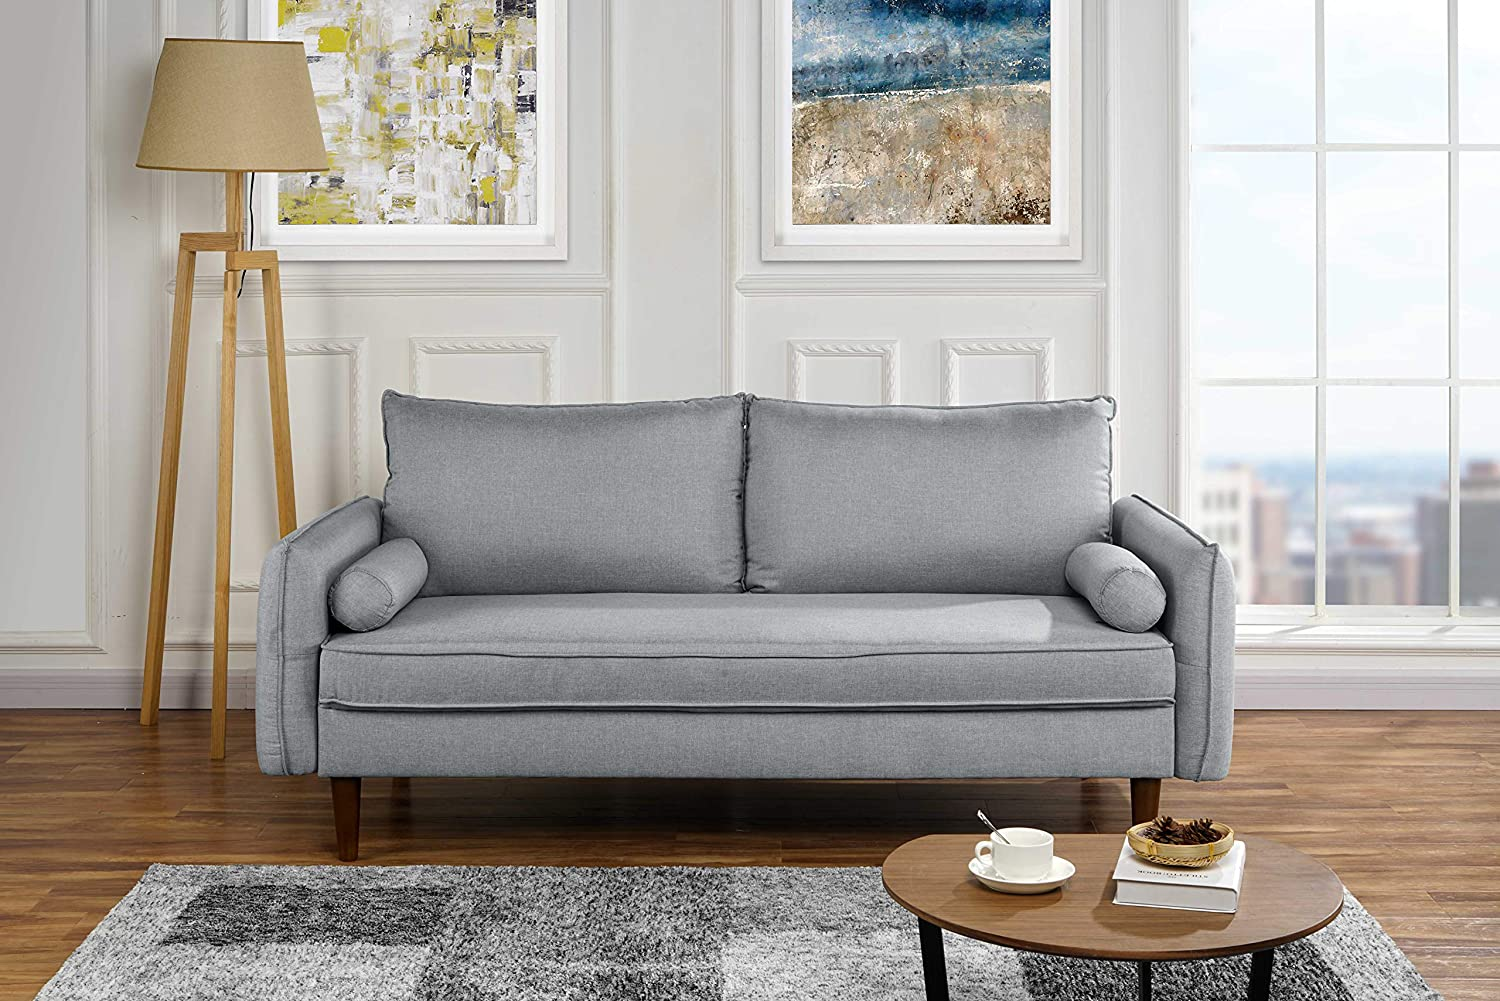 Tremendous Modern Living Room Fabric Sofa Couch With Bolster Pillows Light Grey Ocoug Best Dining Table And Chair Ideas Images Ocougorg